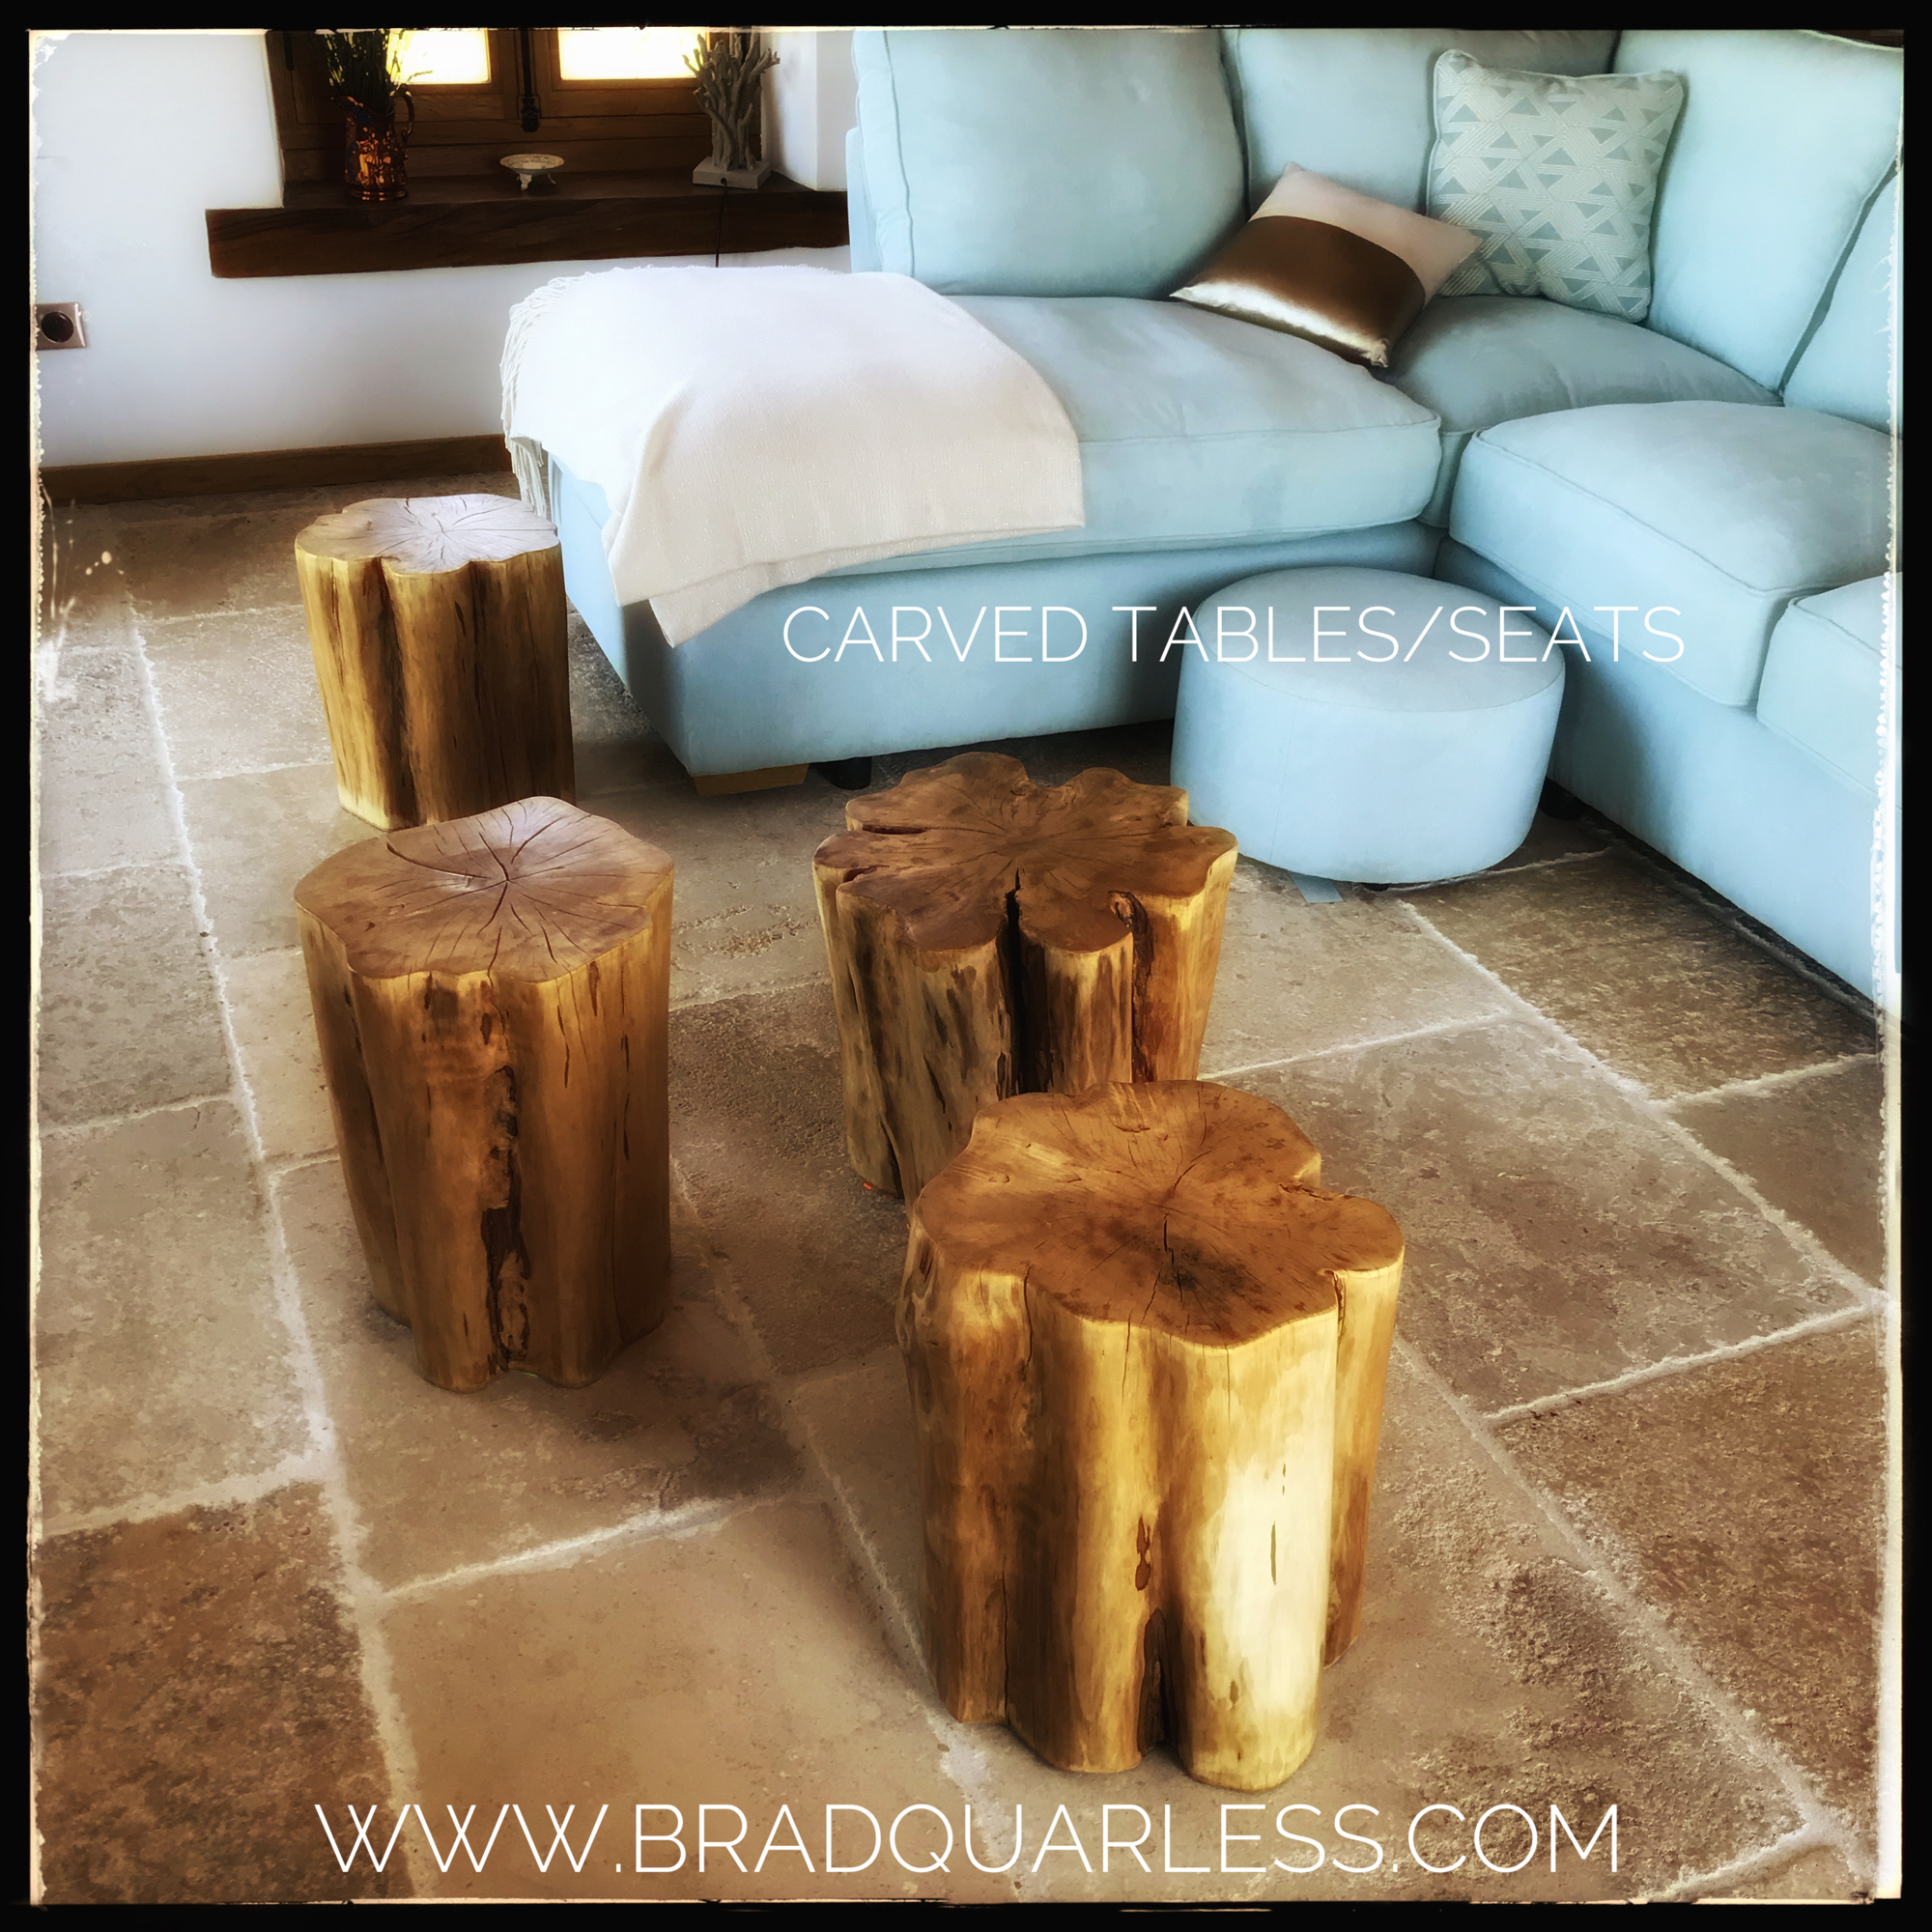 Carved table seats